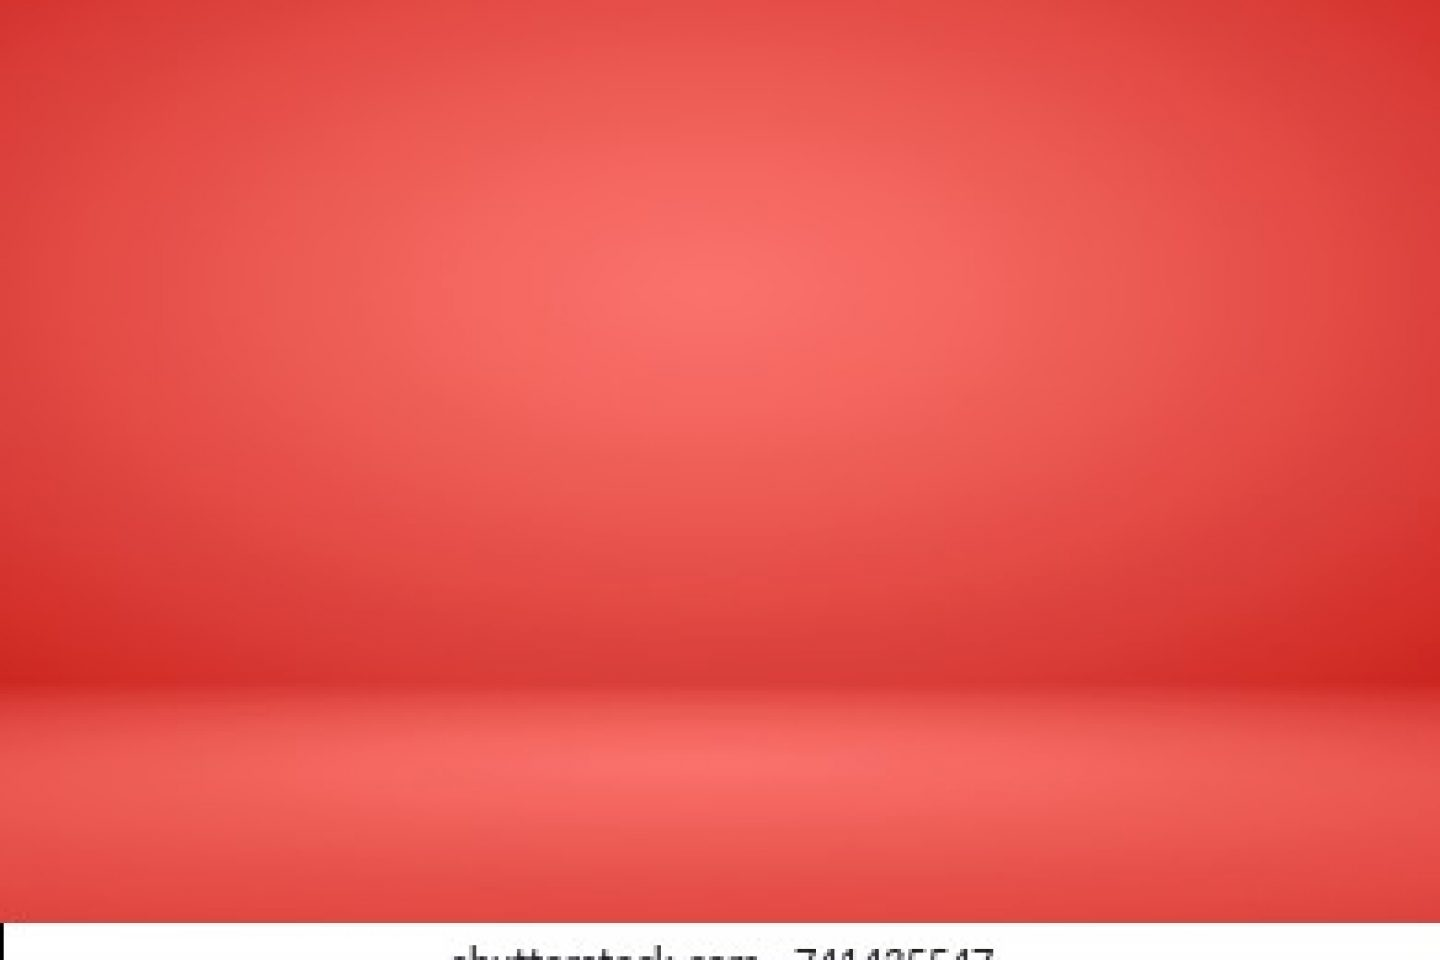 abstract-pink-coral-gradient-background-260nw-741435547